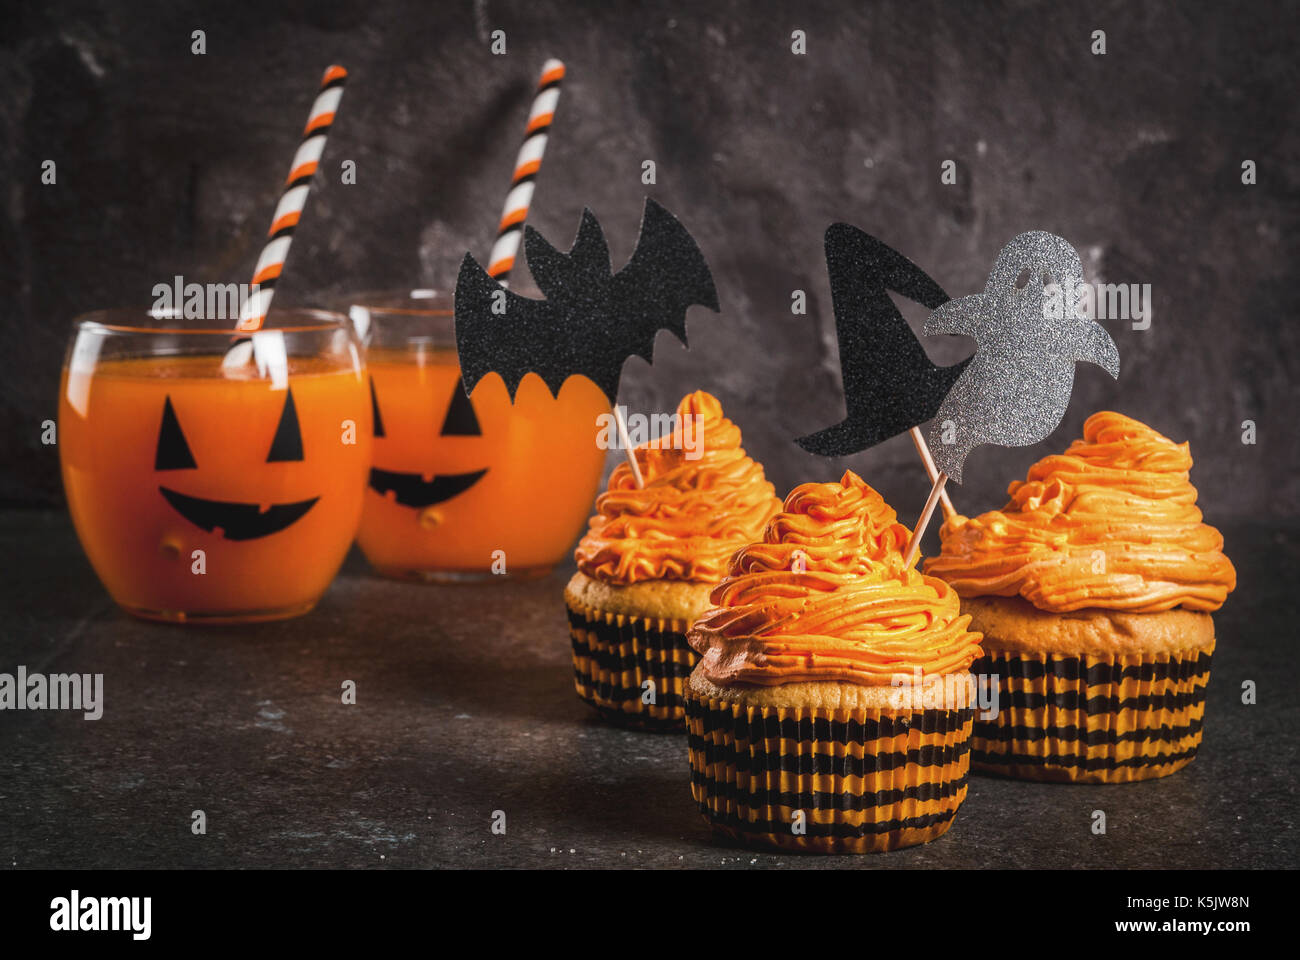 simple idea of funny kidu0027s treat for halloween pumpkin cakes with cream with decorations